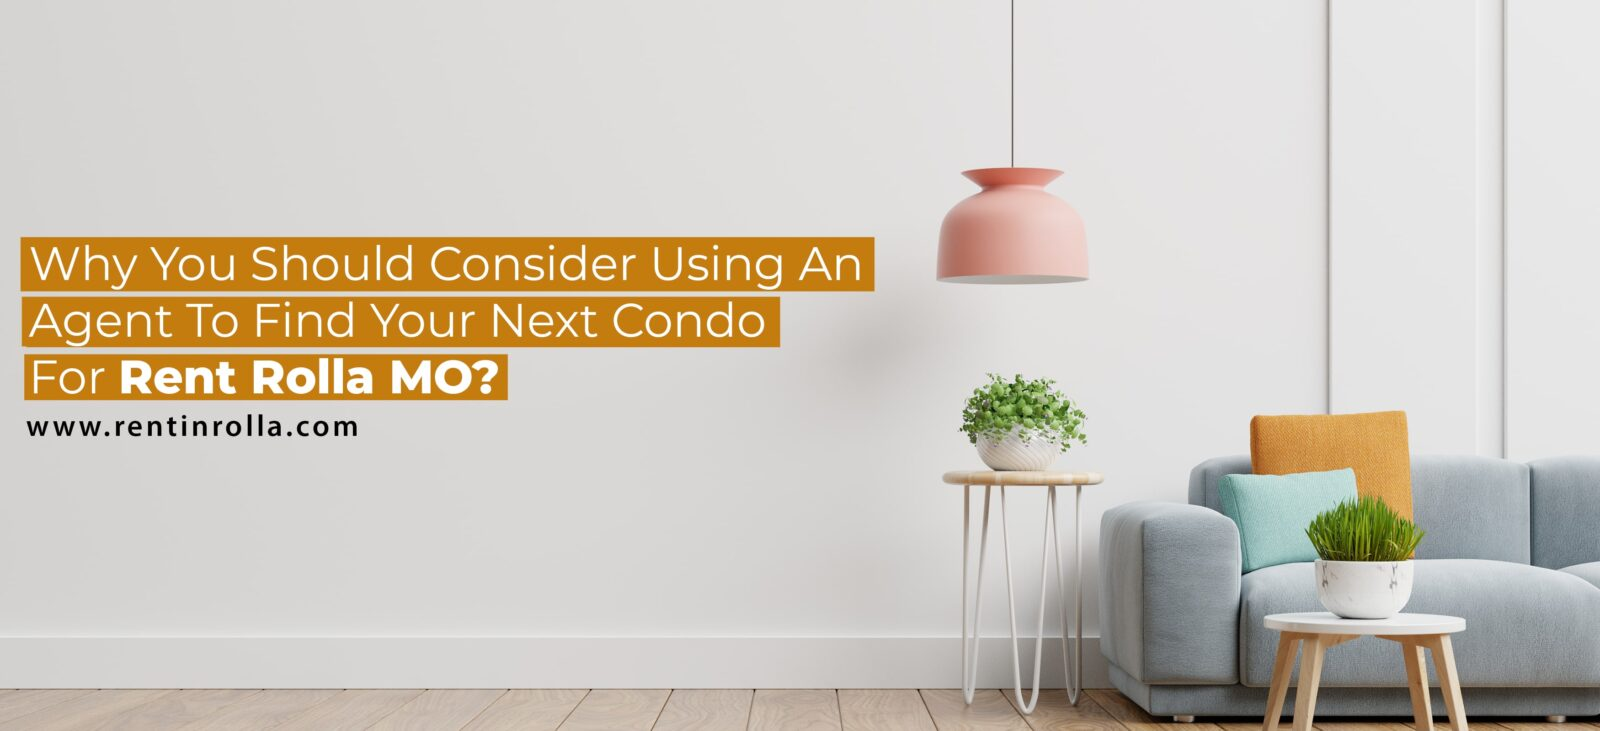 Why should you consider using an Agent to find your next Condo for rent Rolla MO - Rent In Rolla